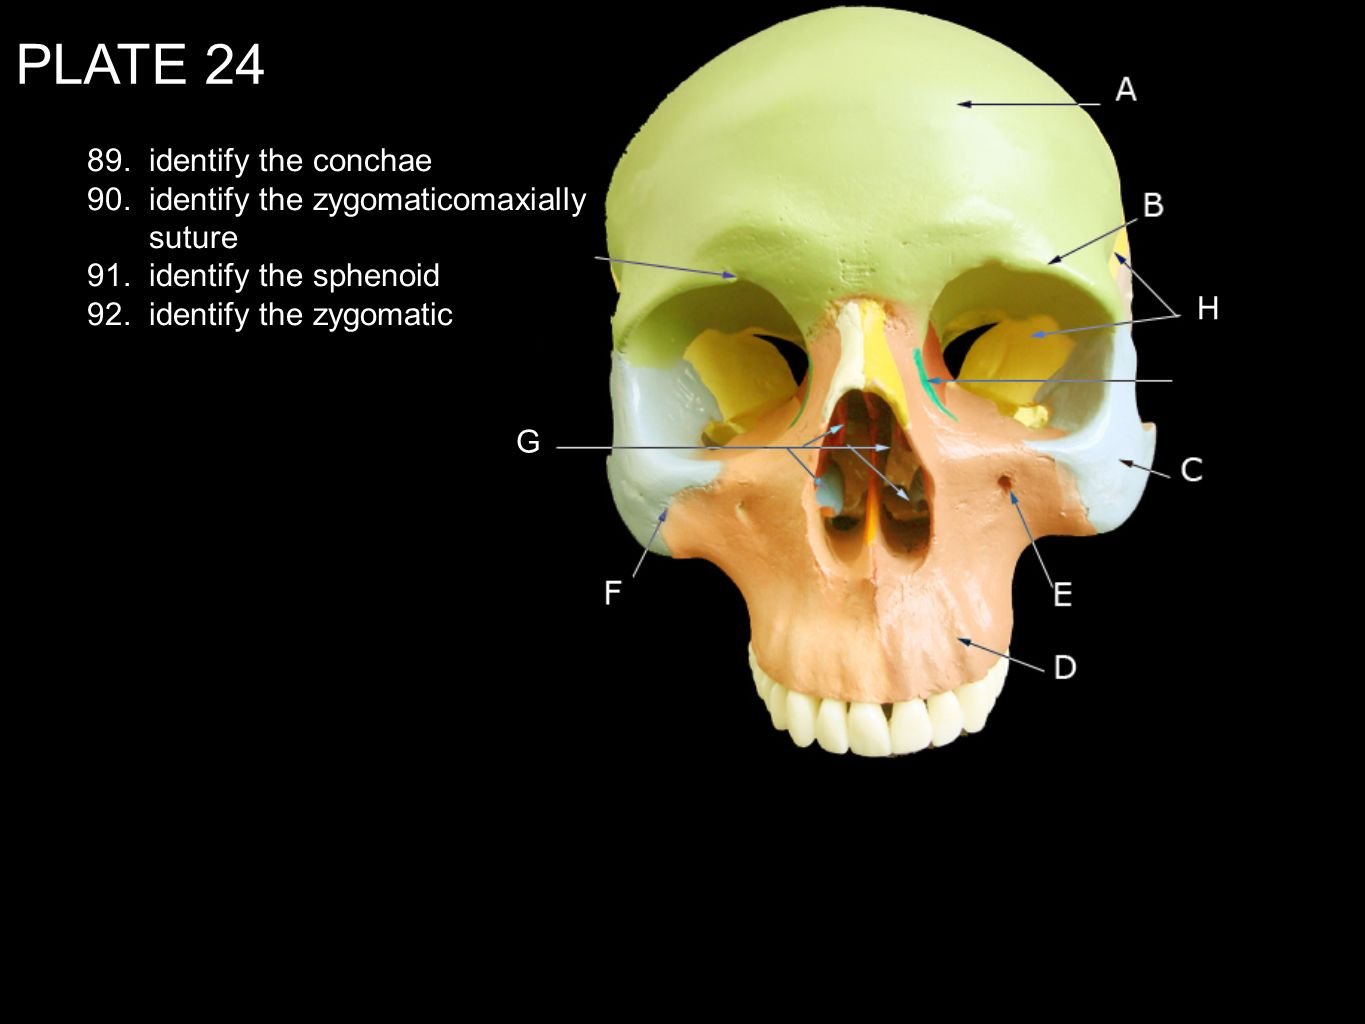 PLATE 24 89. identify the conchae 90. identify the zygomaticomaxially suture 91. identify the sphenoid 92. identify the zygomatic G H